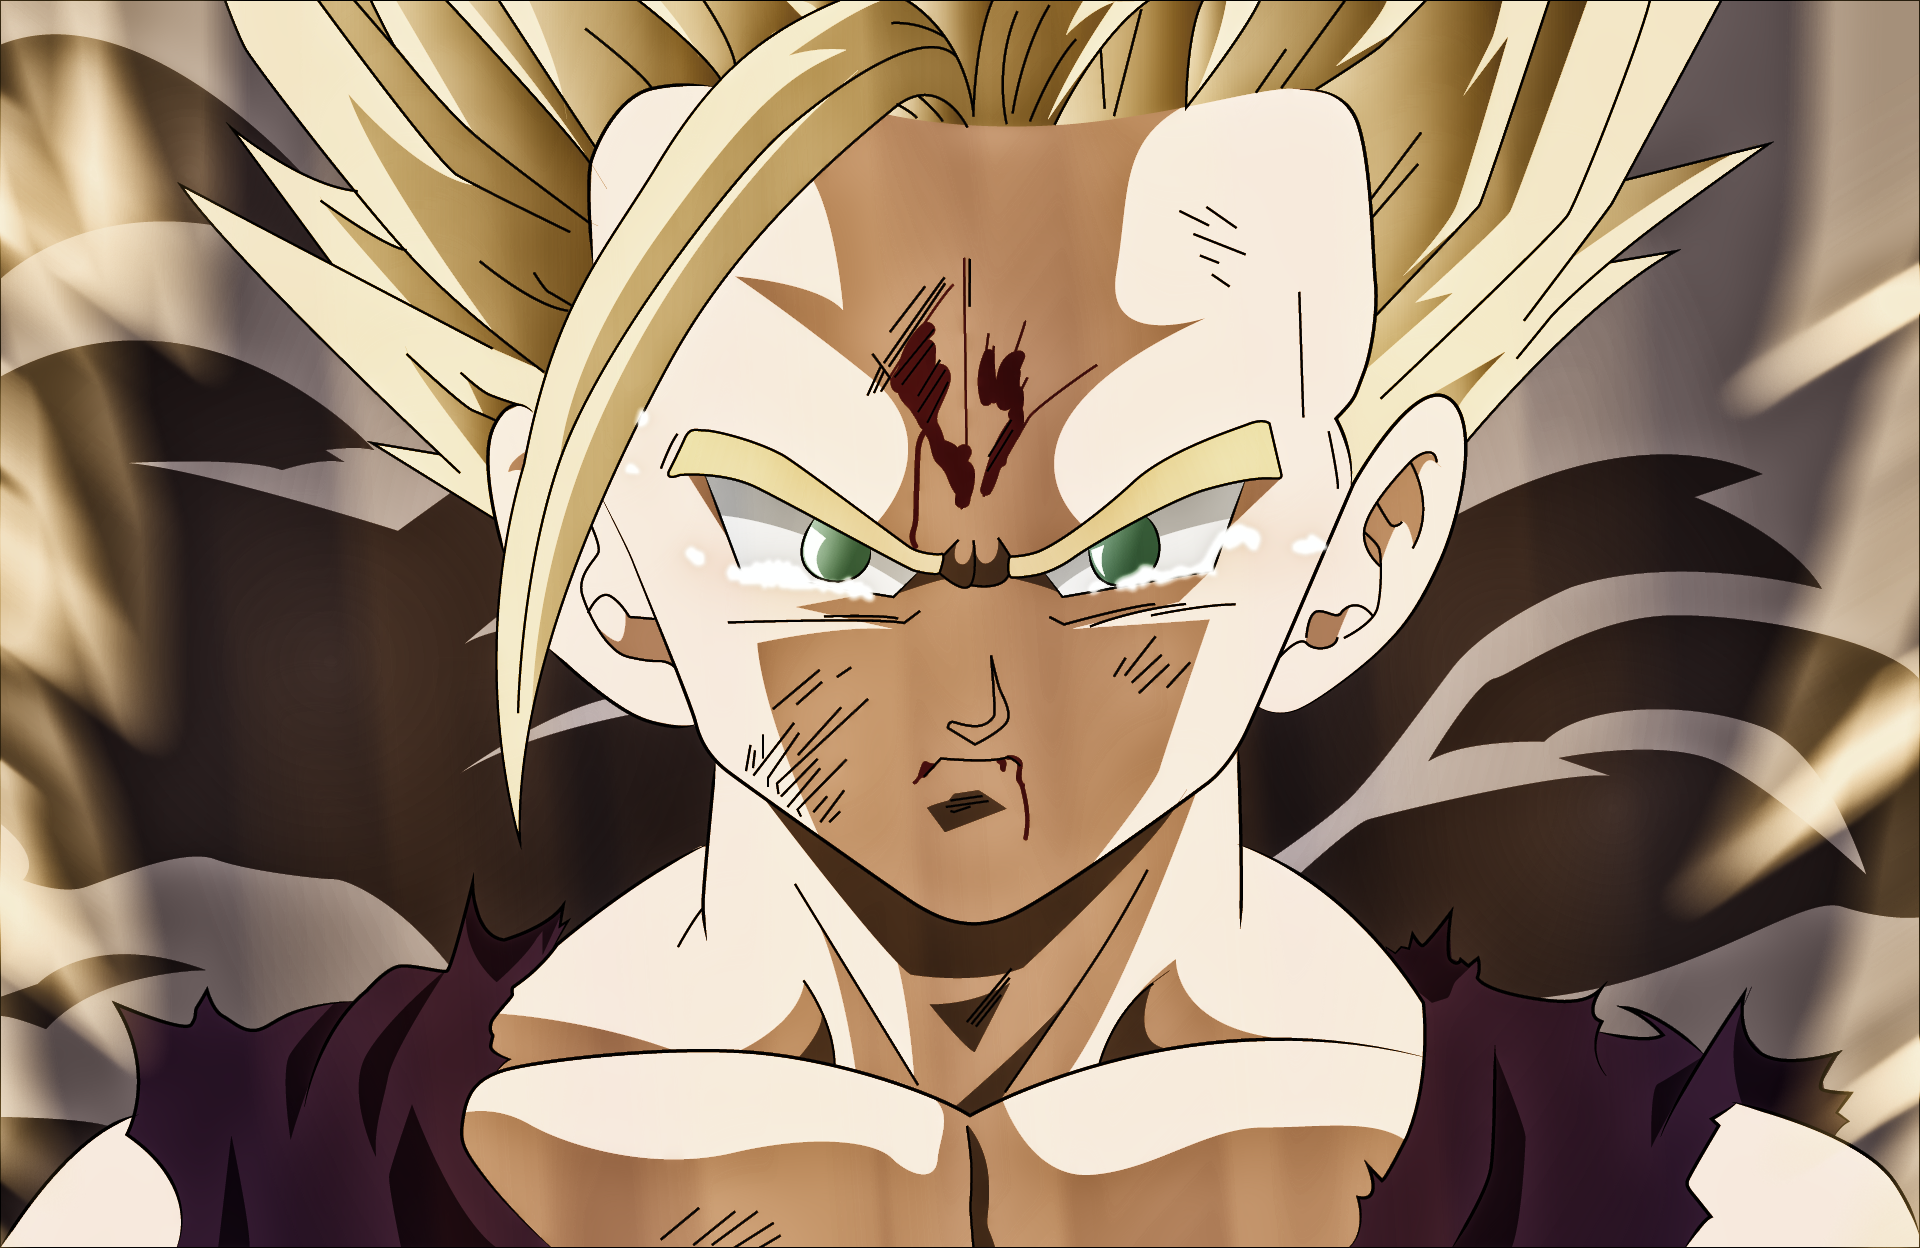 Teen Gohan Ssj2 Wallpaper Gohan Ssj2 1920x1248 Download Hd Wallpaper Wallpapertip